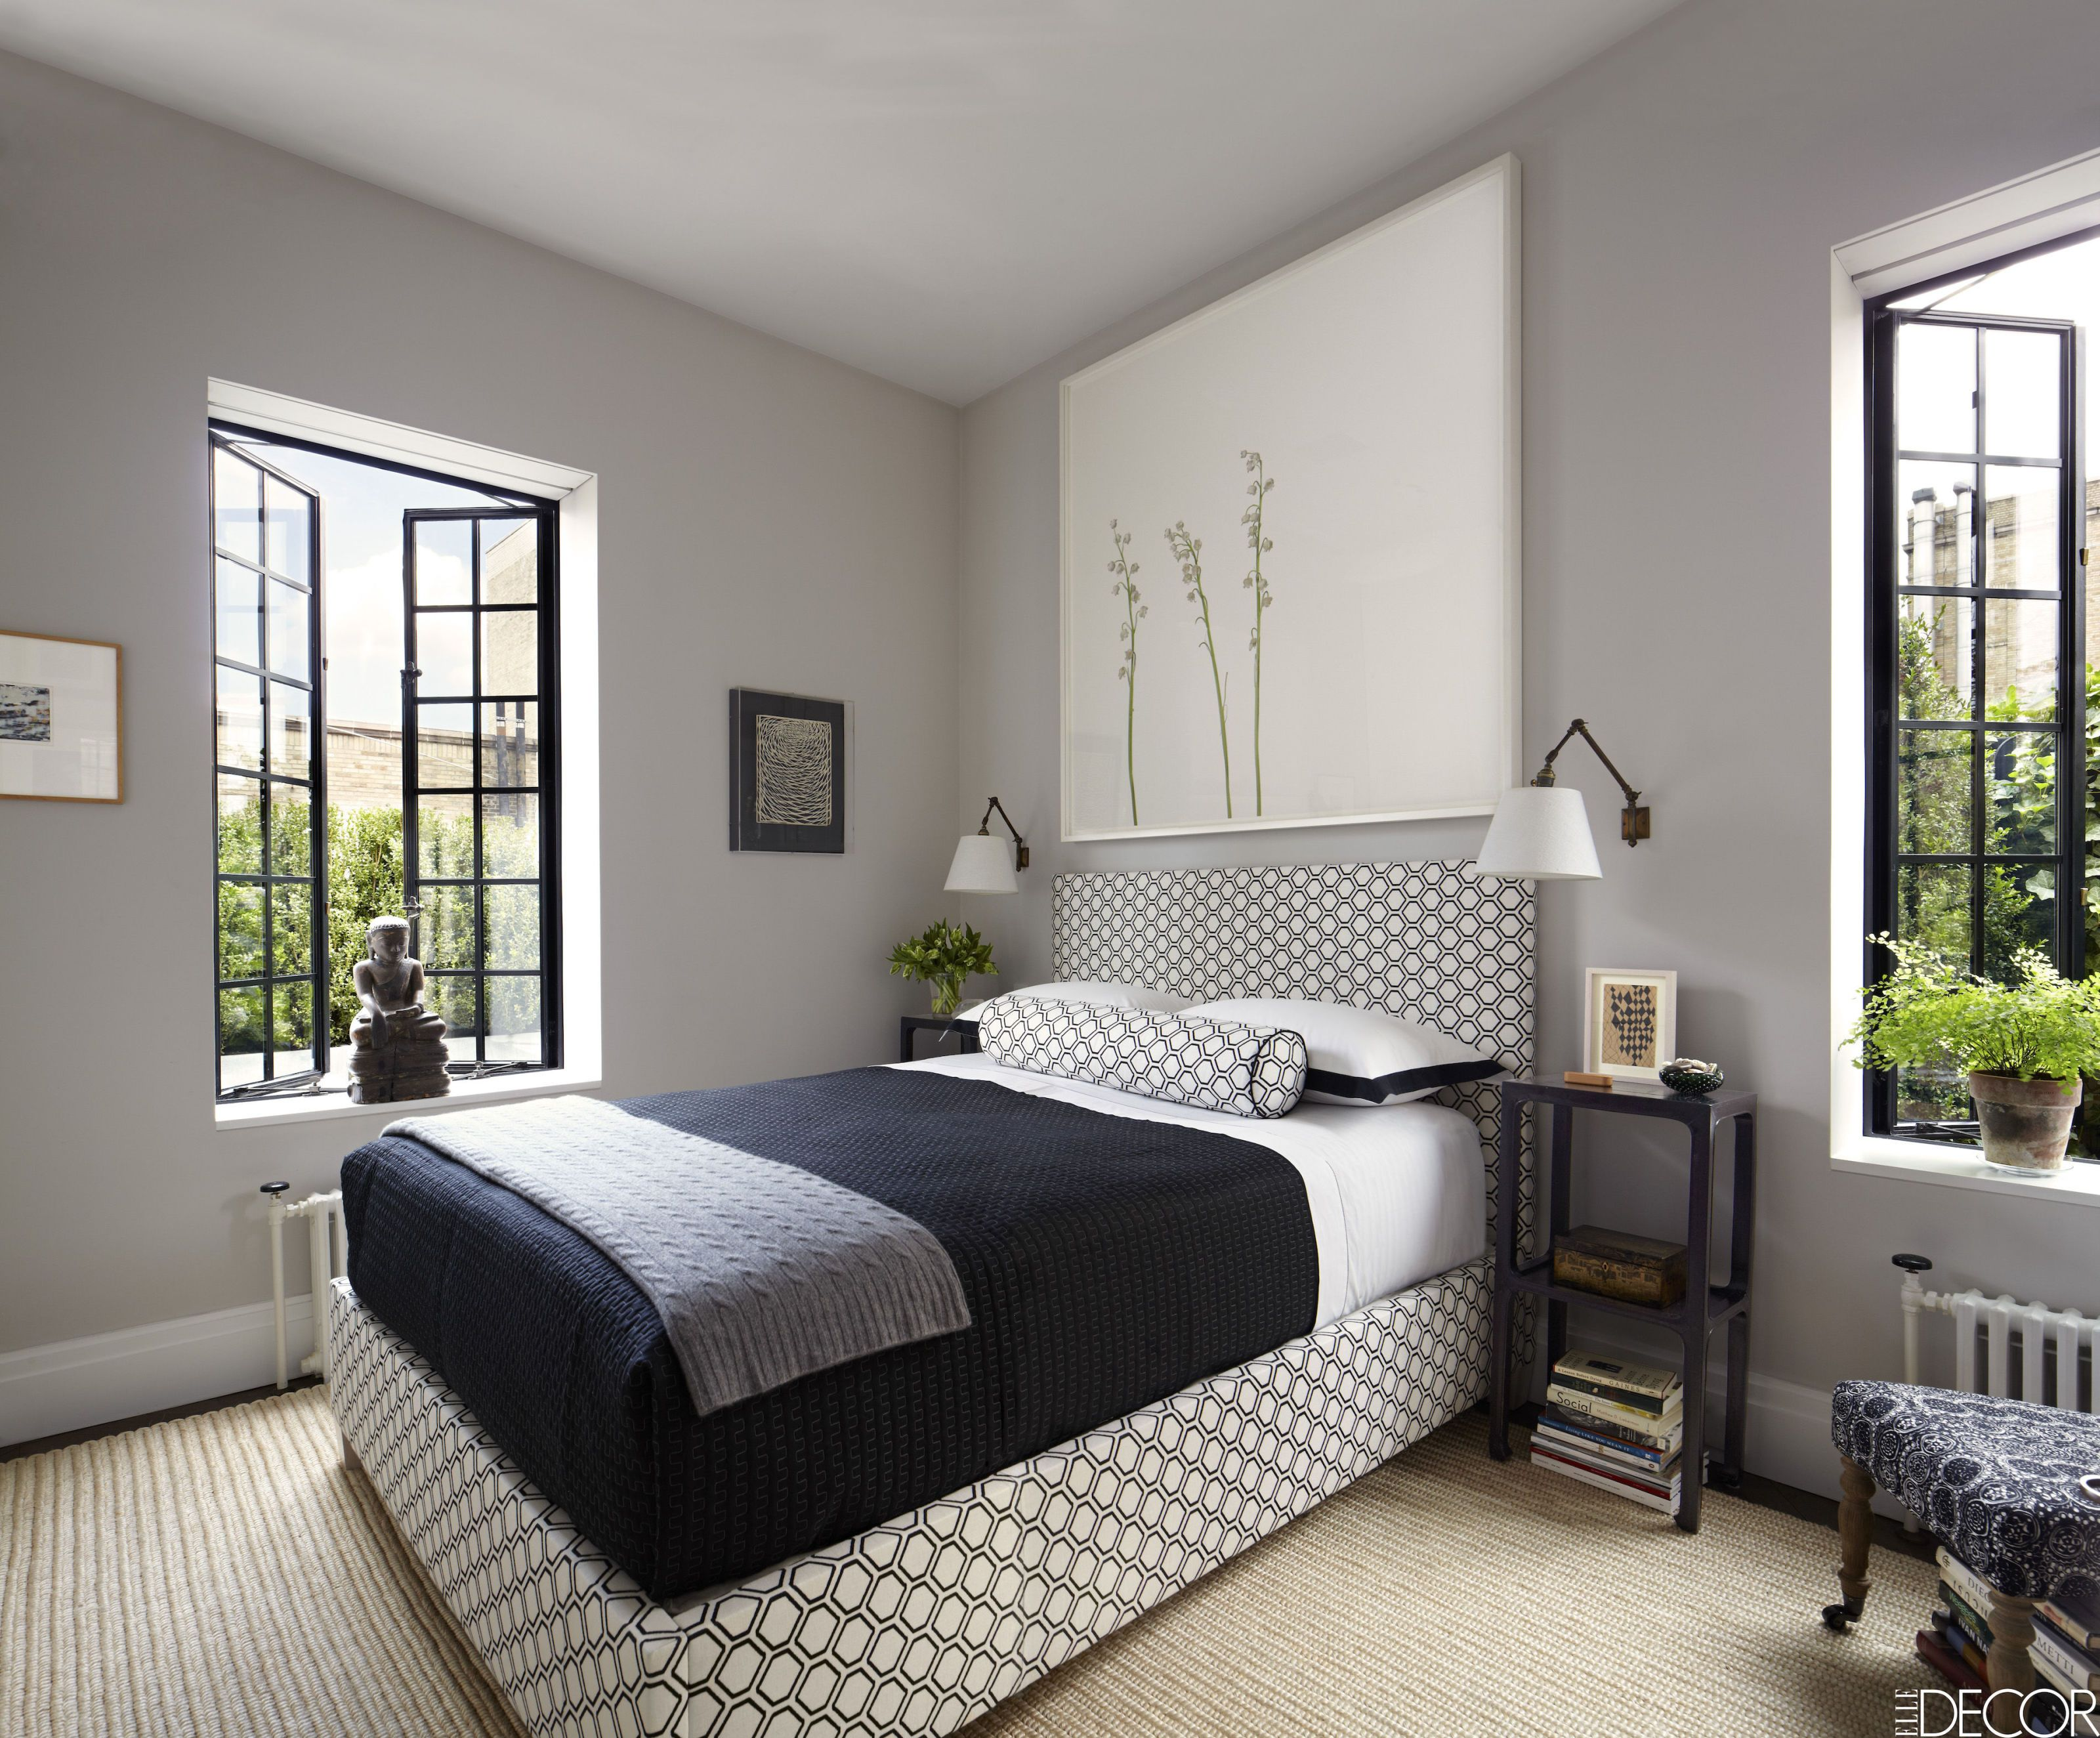 8. Take Advantage Of Wall Space & 10 Expert Lighting Tips for Apartments - How To Brighten an Apartment